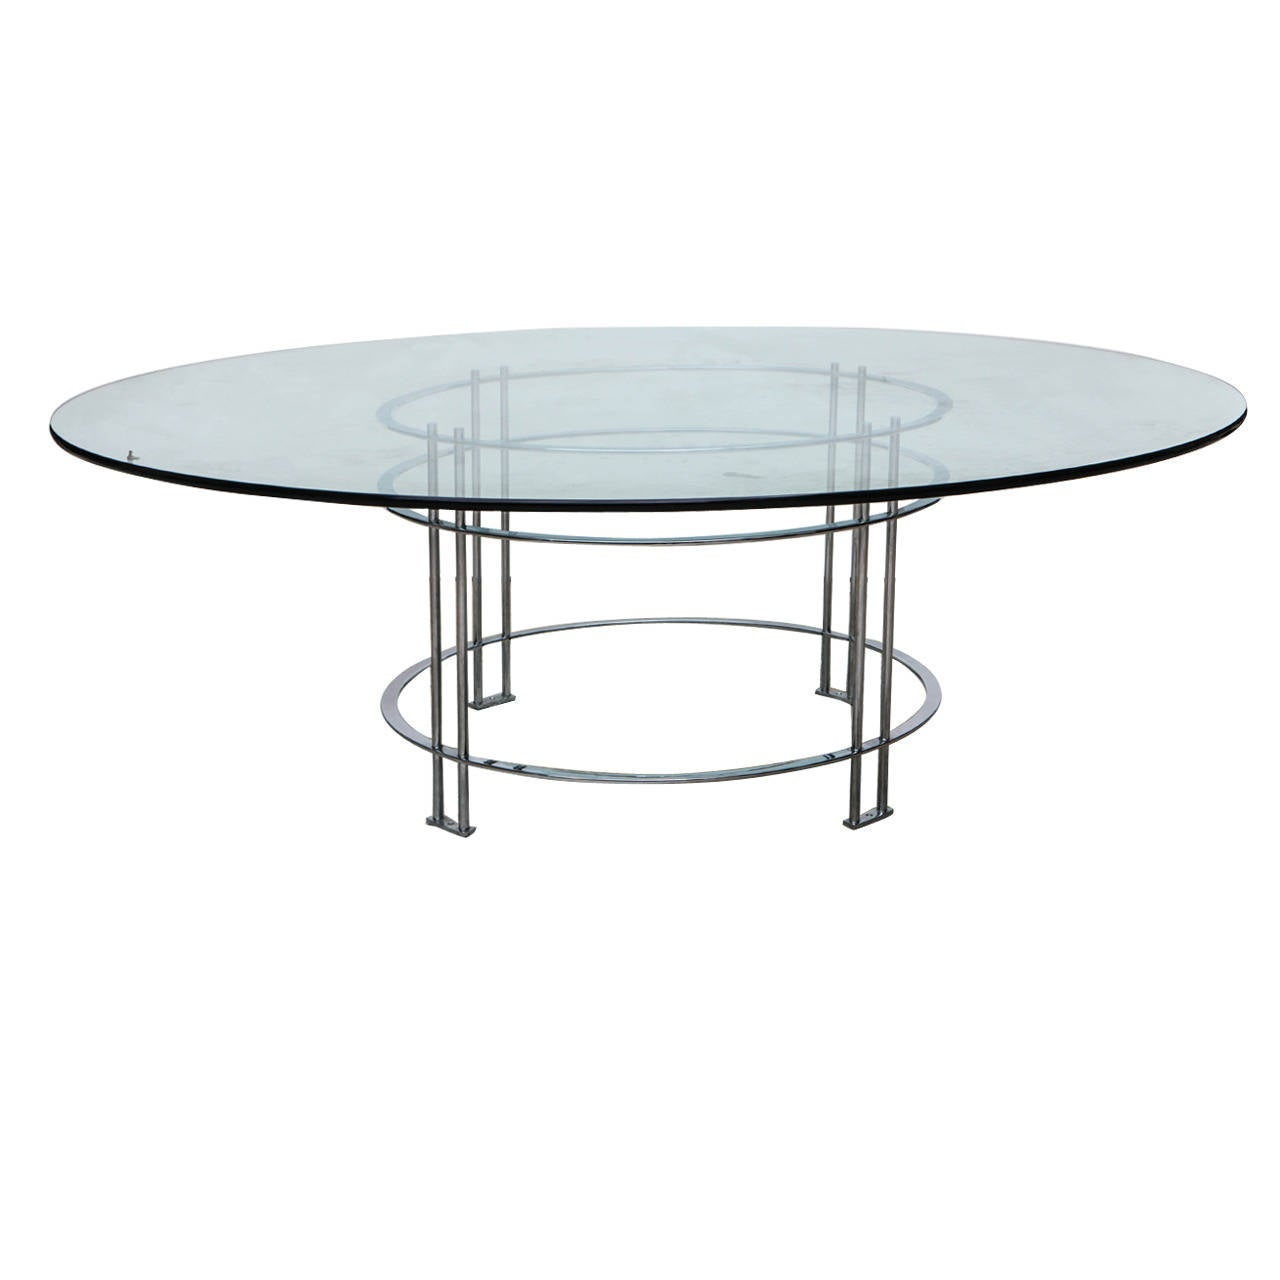 Vintage round dining table with glass top for sale at 1stdibs Round glass dining table